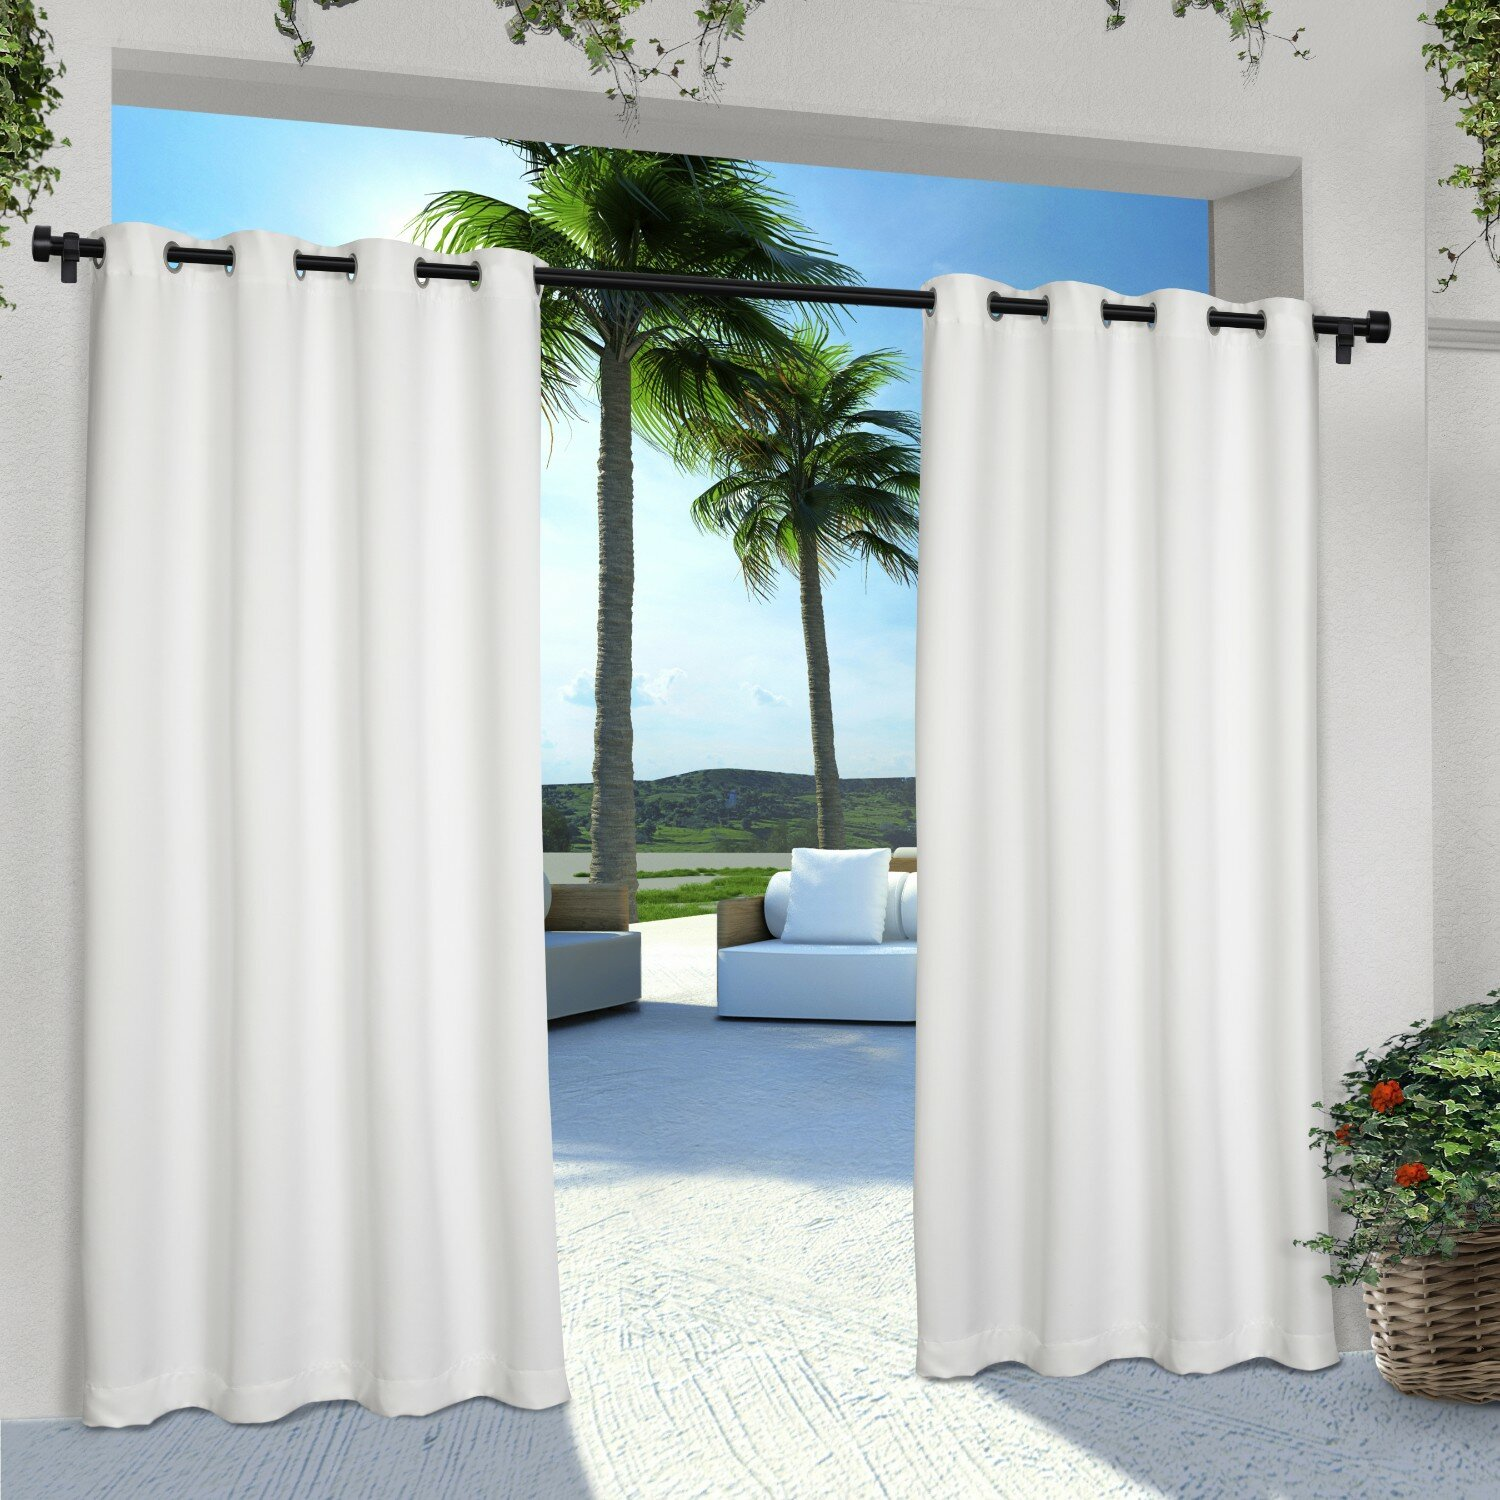 best image of indoor outdoor curtains - all can download all guide